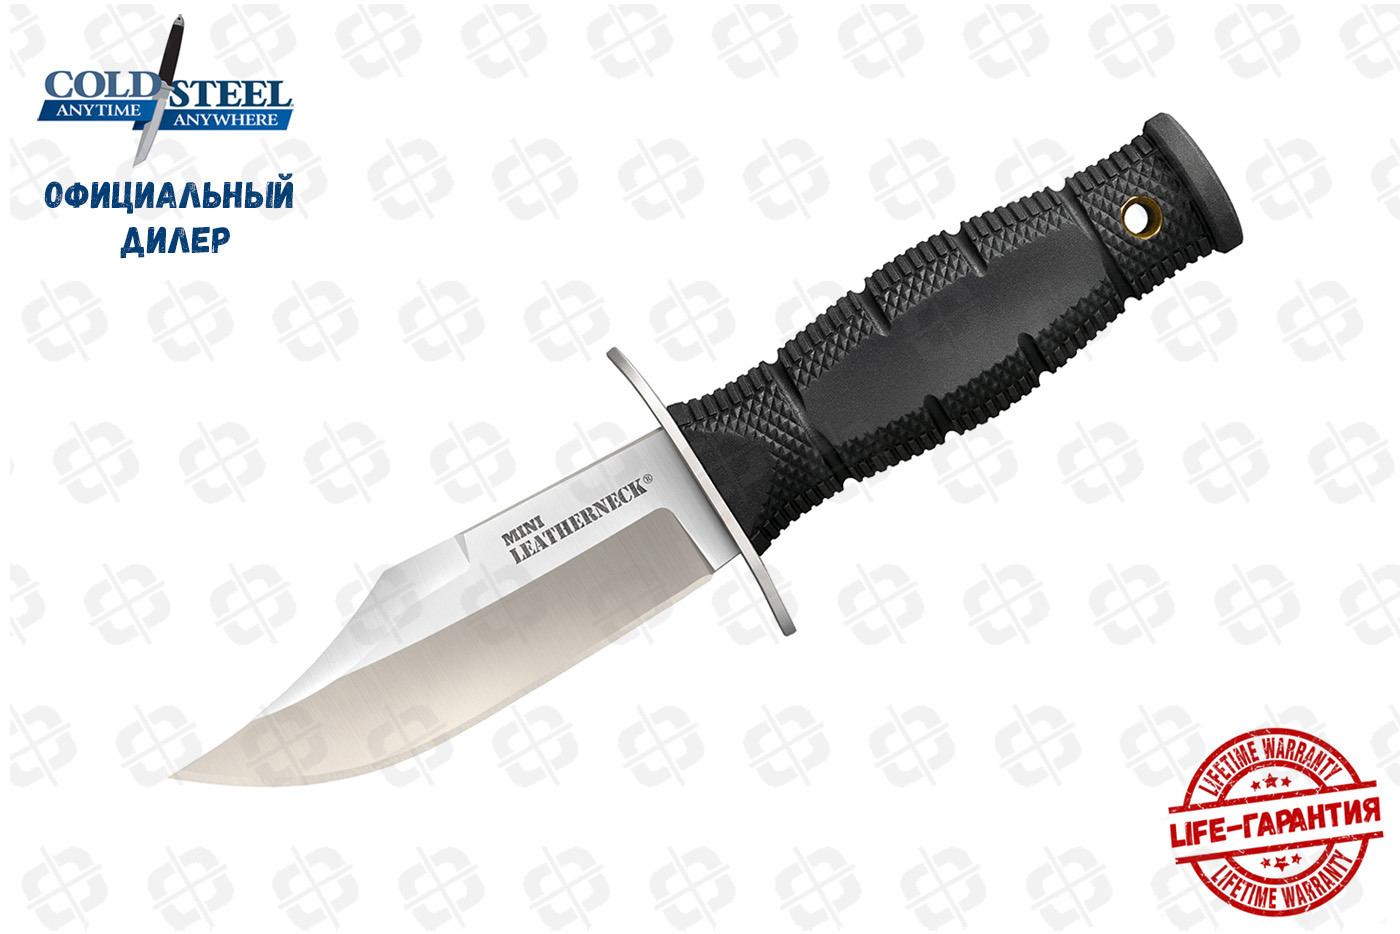 Cold Steel 39LSAB Mini Leatherneck Clip Point